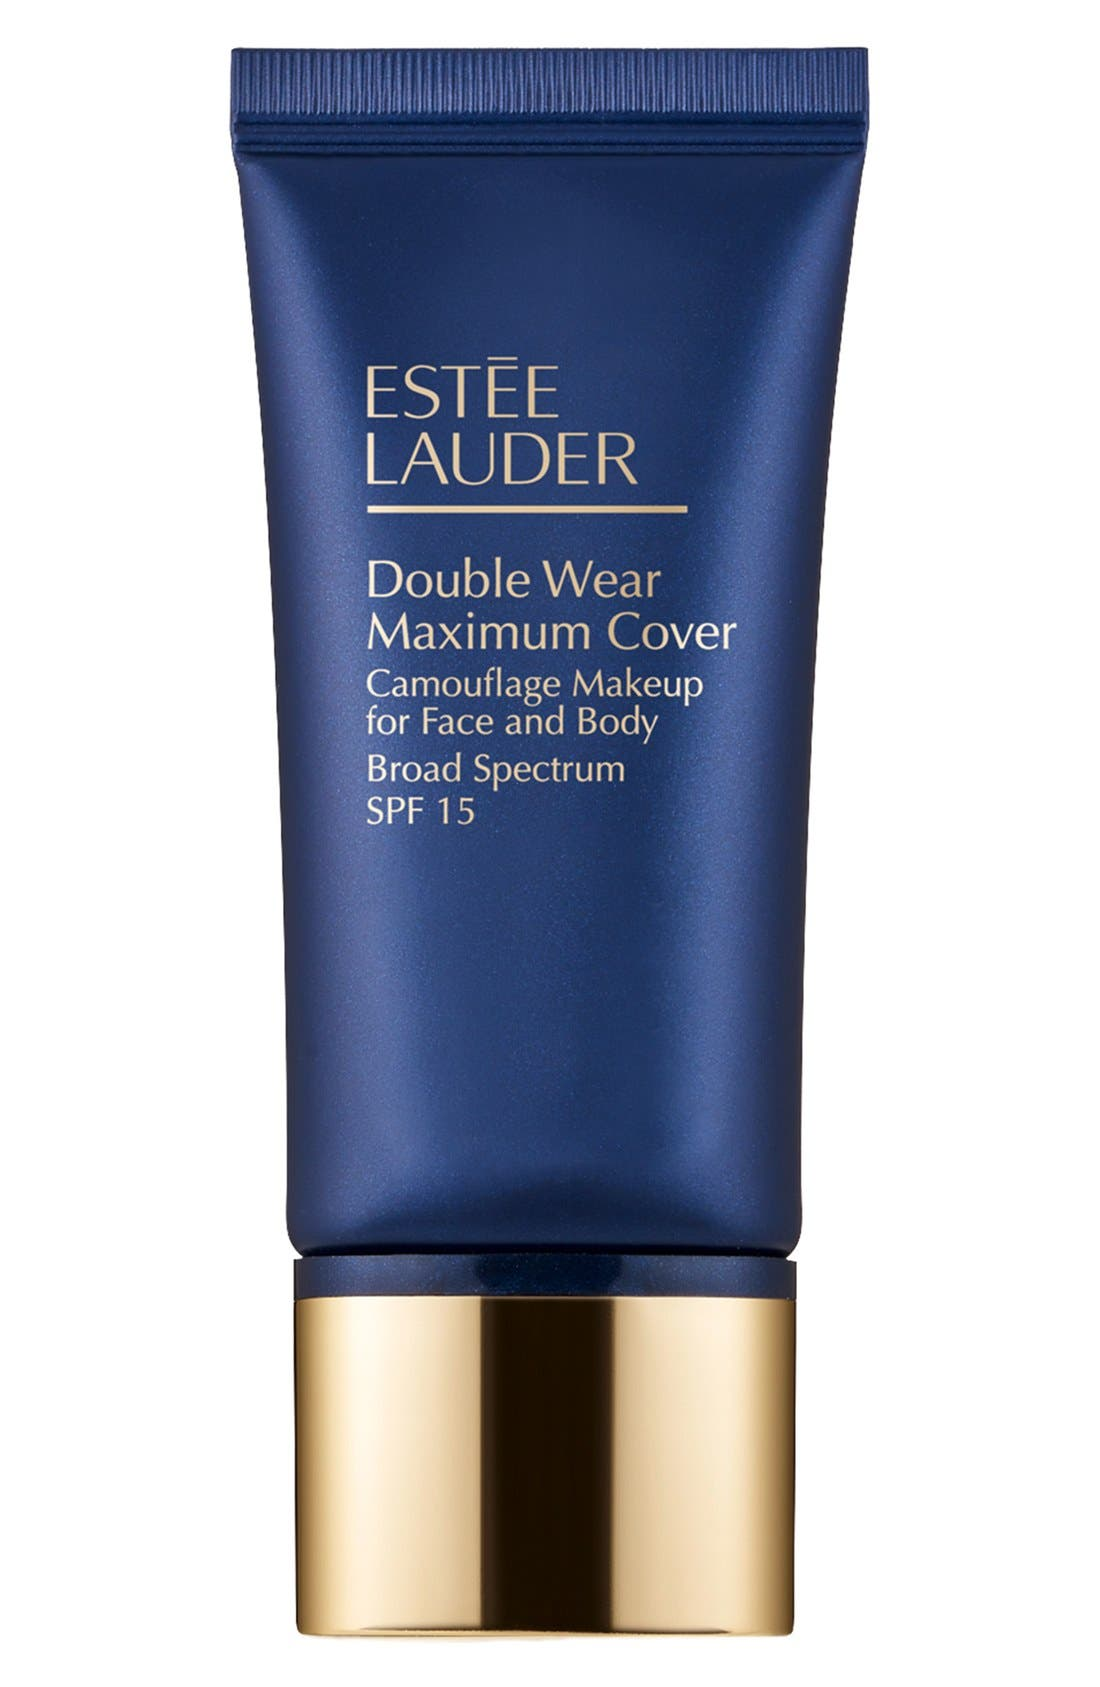 Double Wear Maximum Cover Camouflage Makeup for Face and Body SPF 15,                             Main thumbnail 1, color,                             MEDIUM DEEP